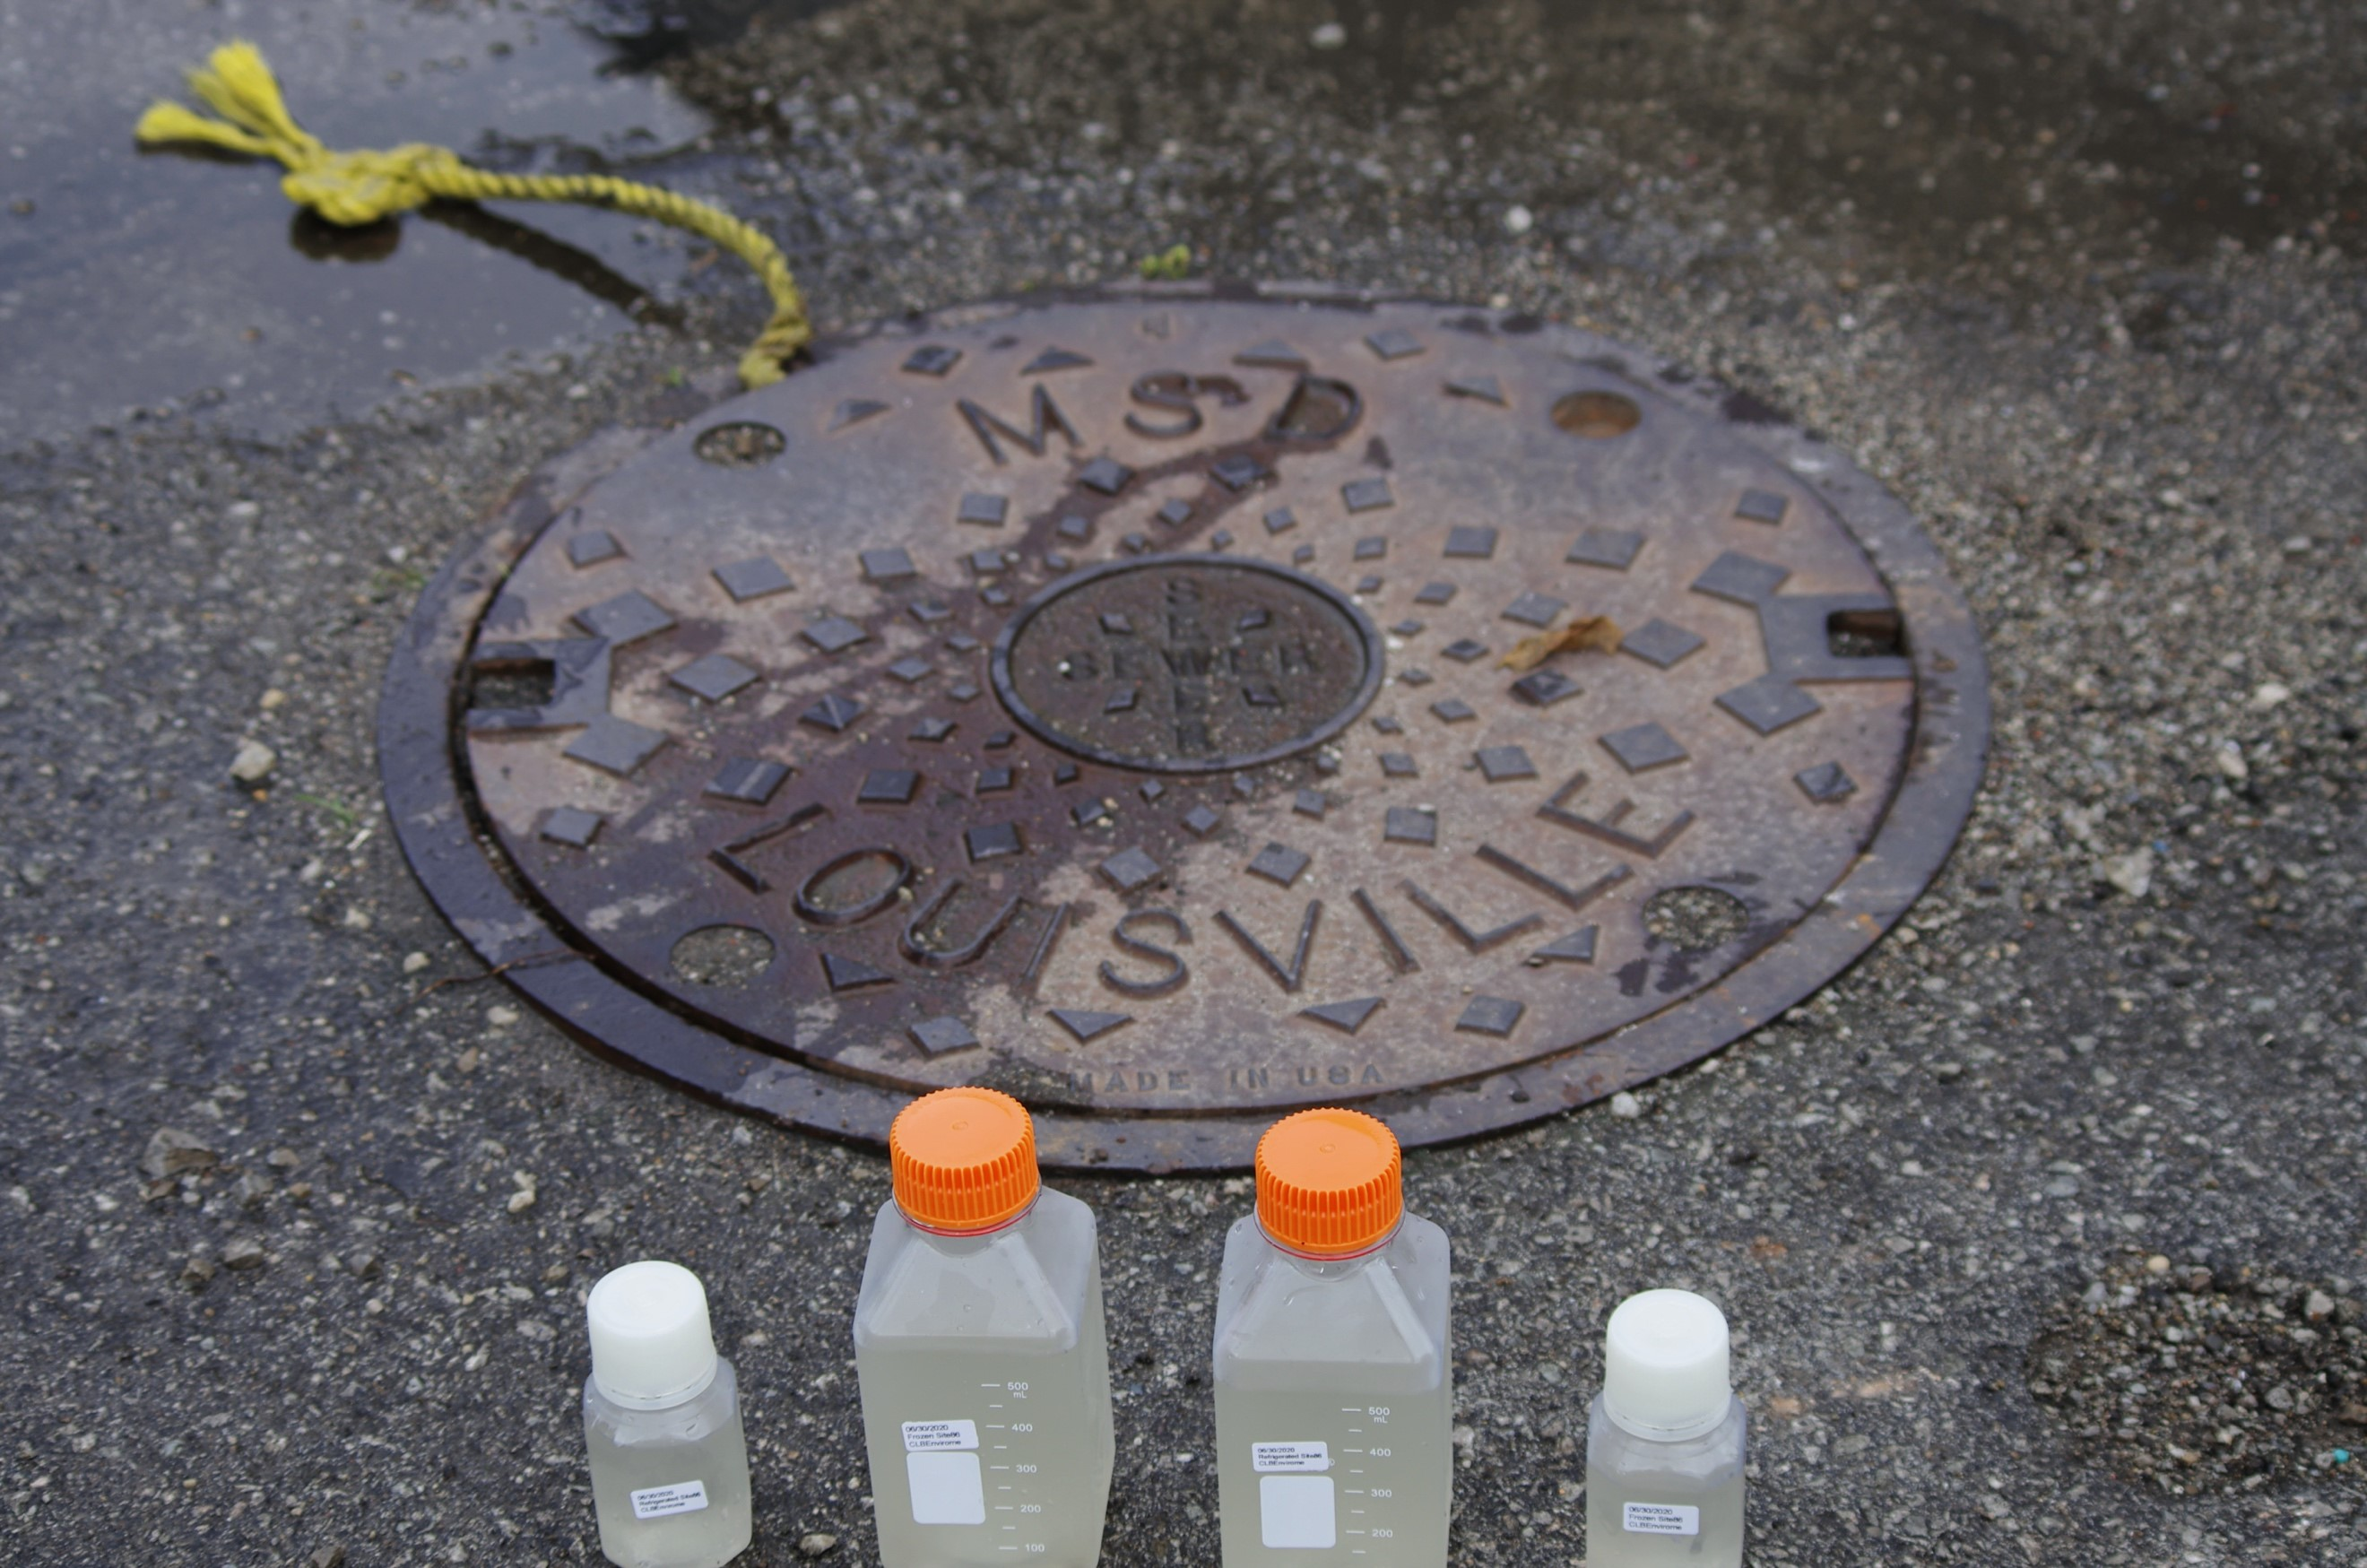 Samples with a manhole in the background